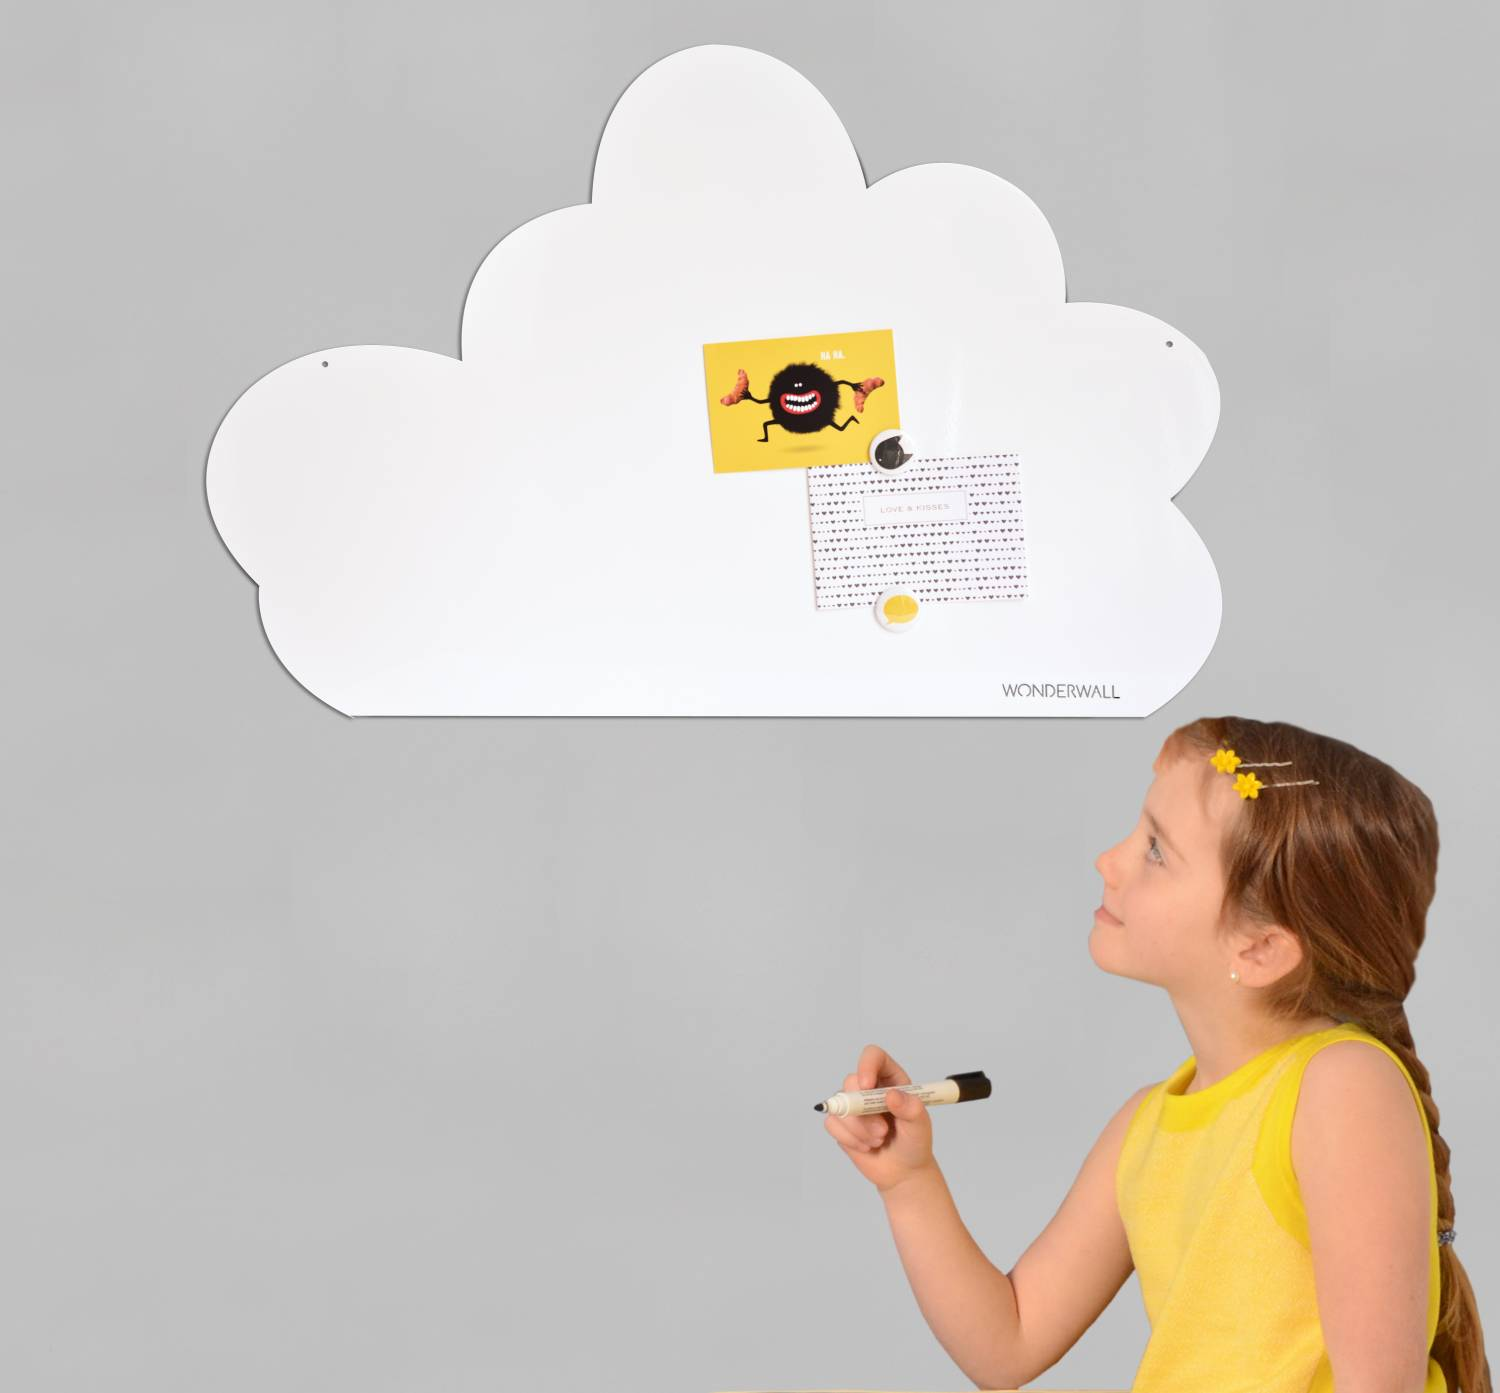 FAB5_Wonderwall cloud magnetic whiteboard